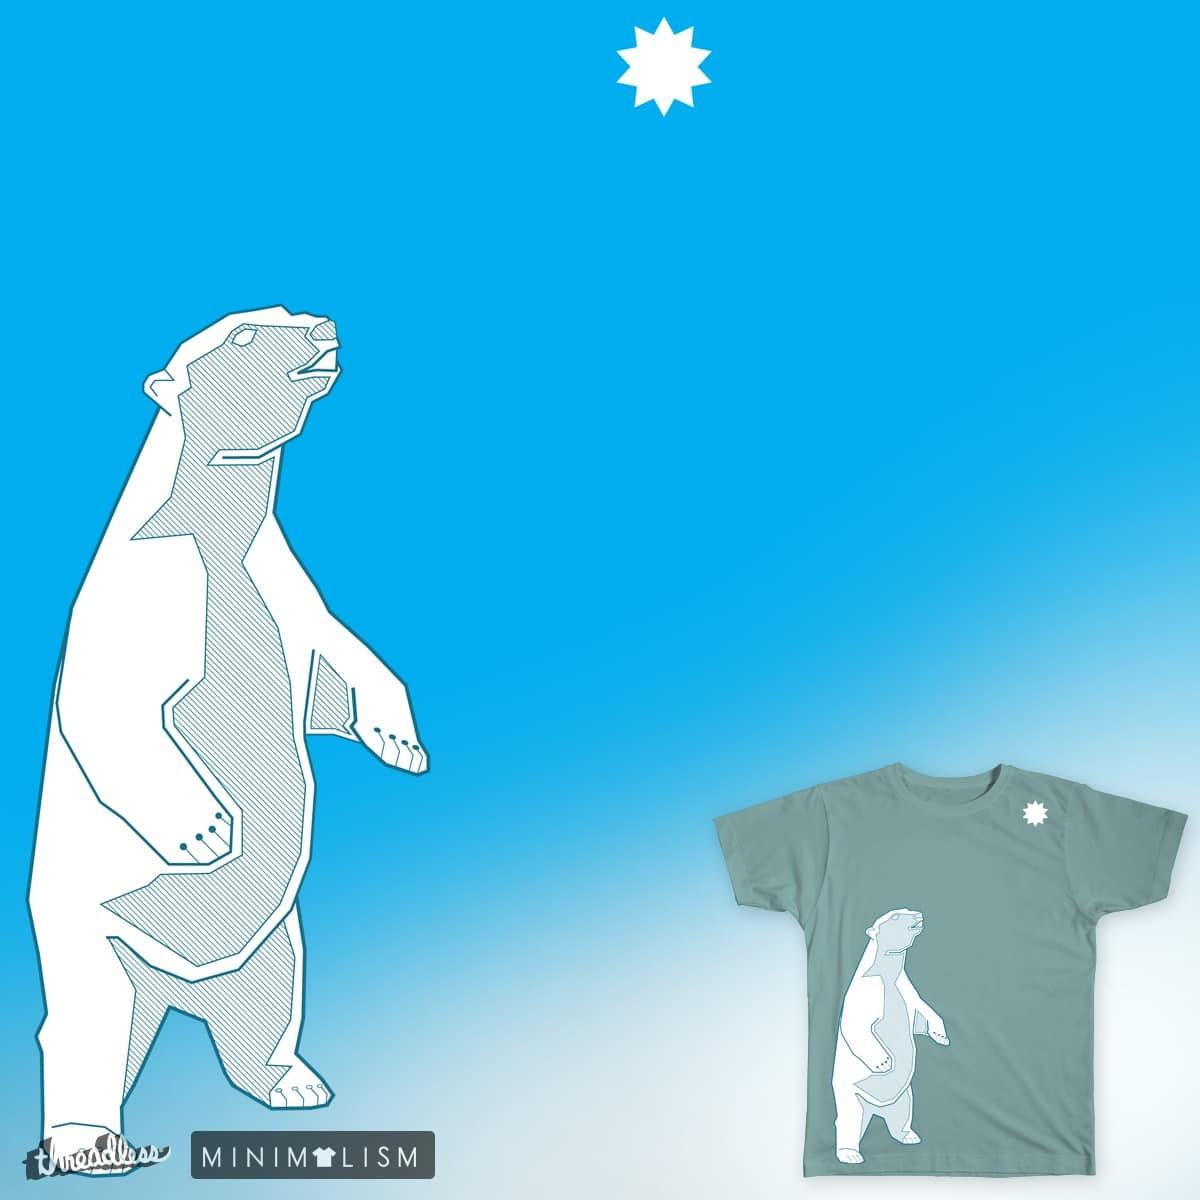 Guide me home by Oldsea on Threadless